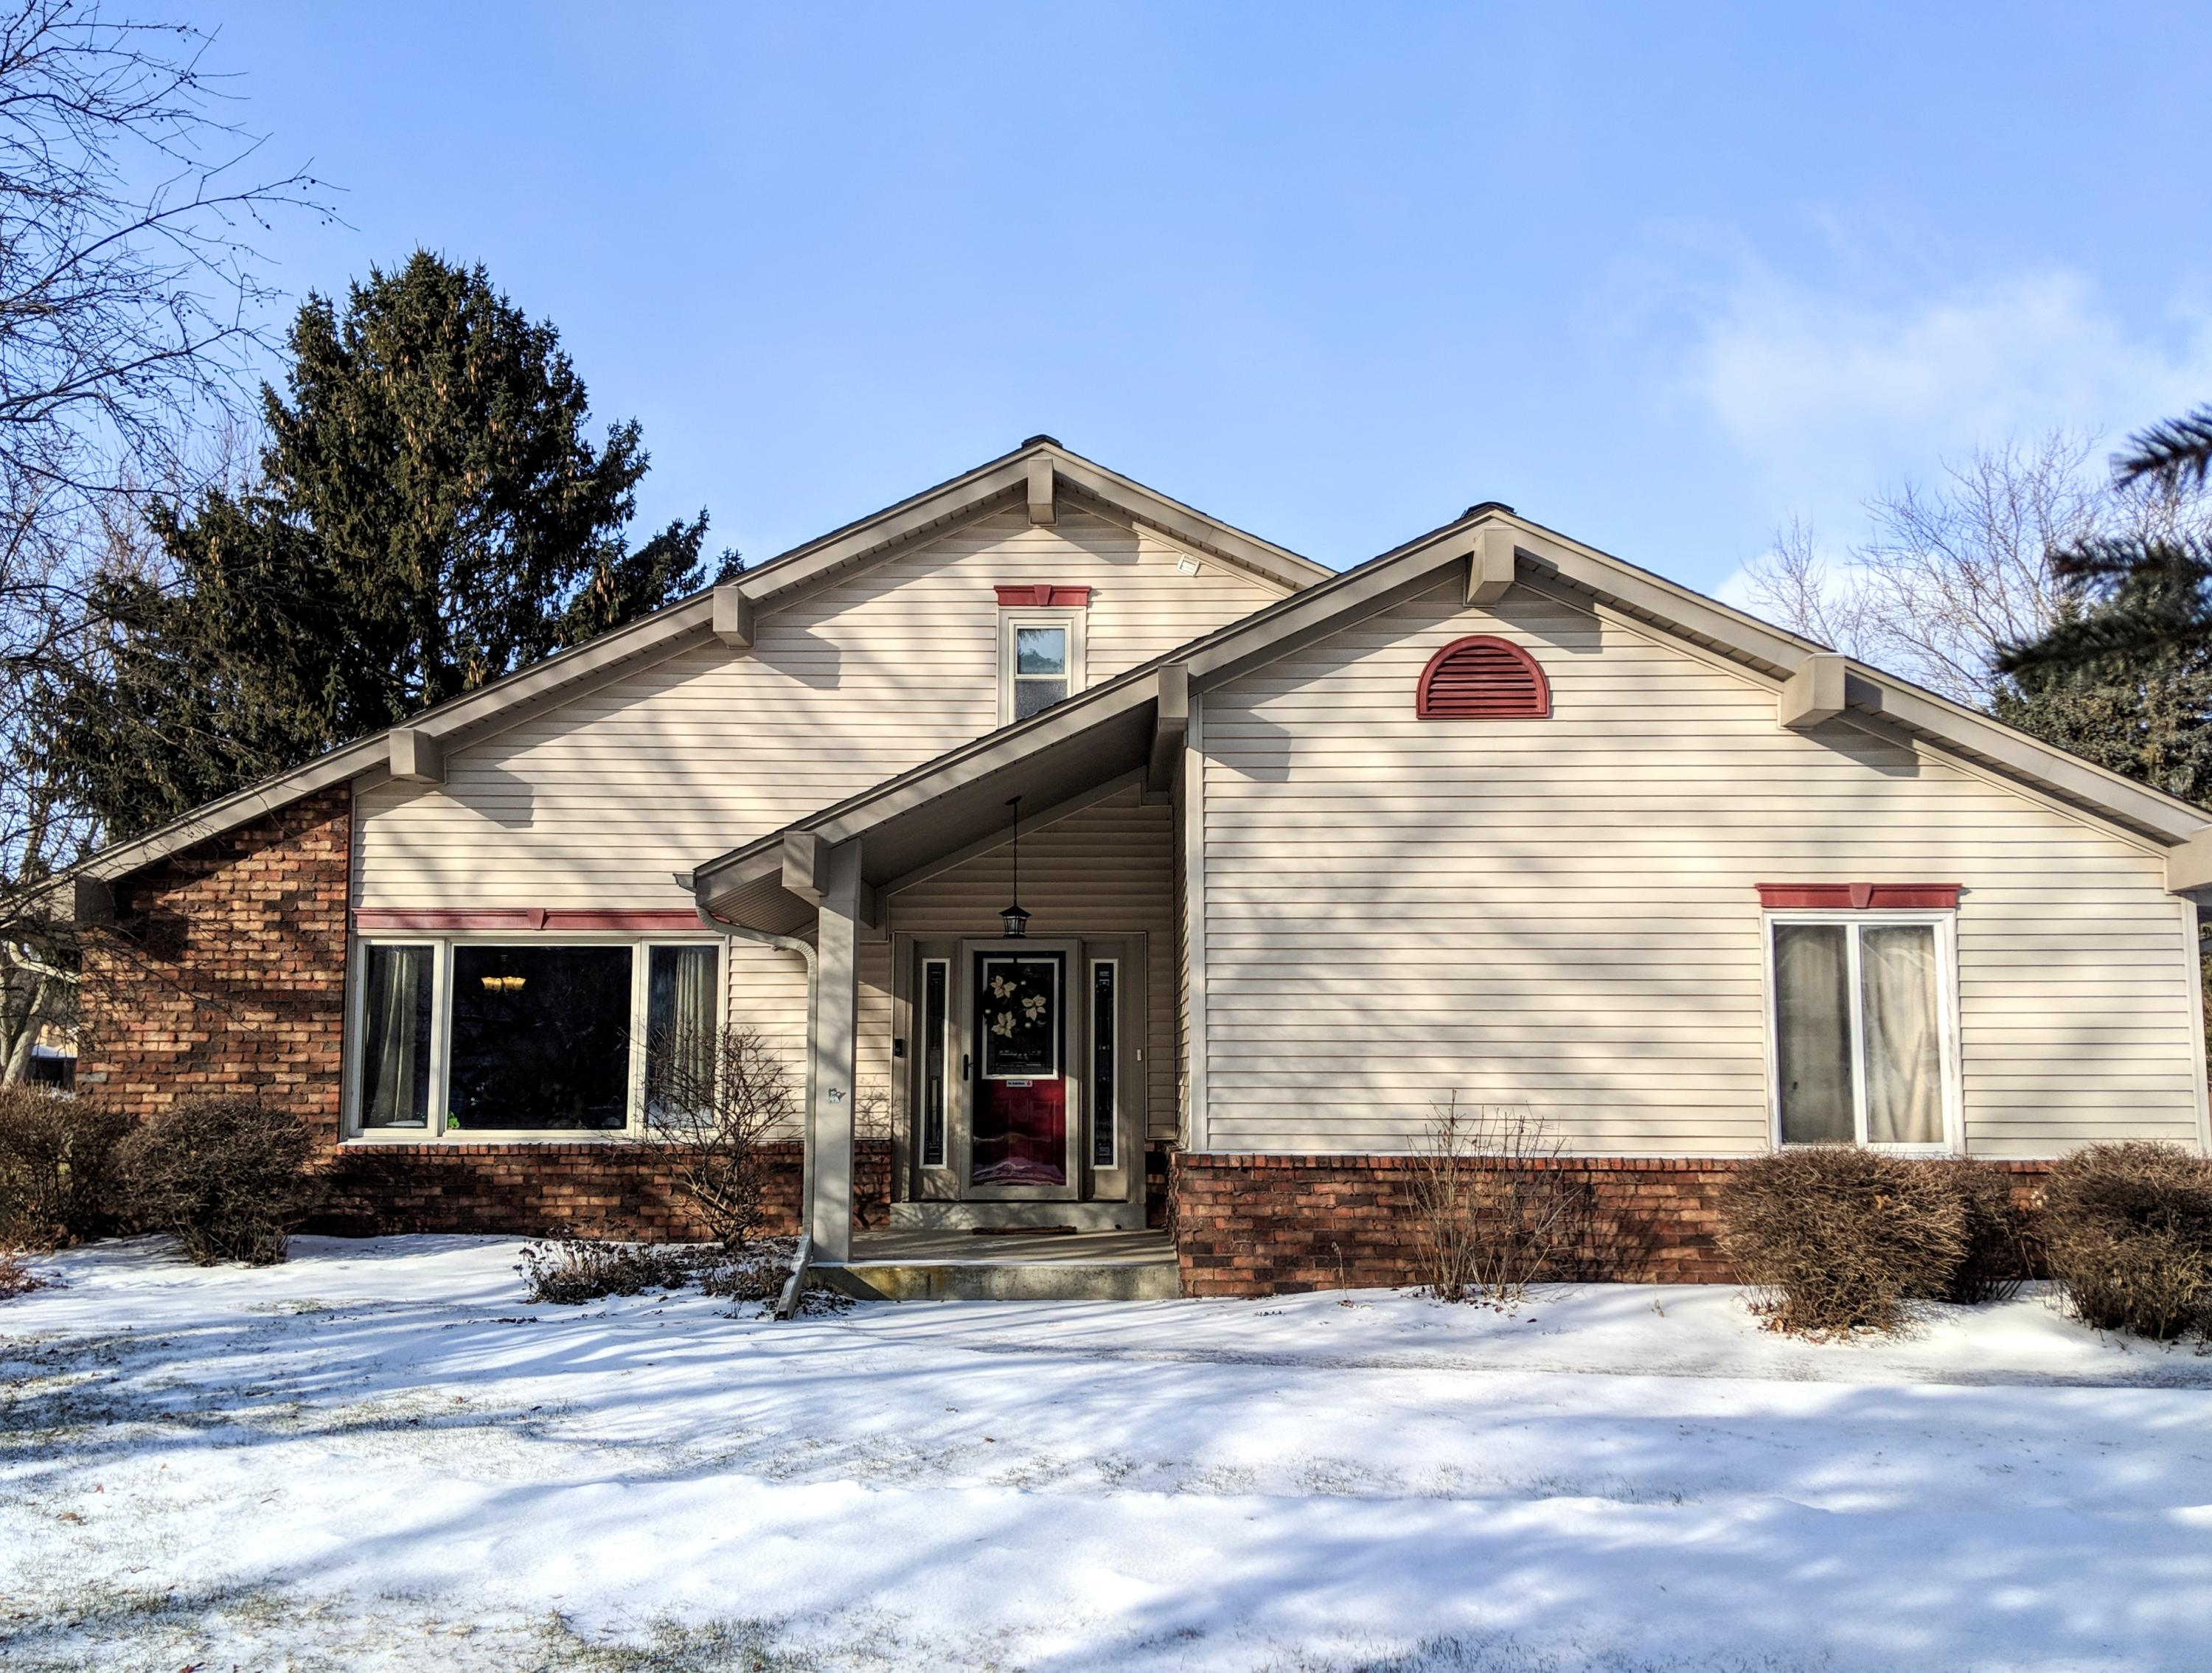 W223N2435 Glenwood Ln, Pewaukee, Wisconsin 53186, 3 Bedrooms Bedrooms, 7 Rooms Rooms,2 BathroomsBathrooms,Single-Family,For Sale,Glenwood Ln,1622533